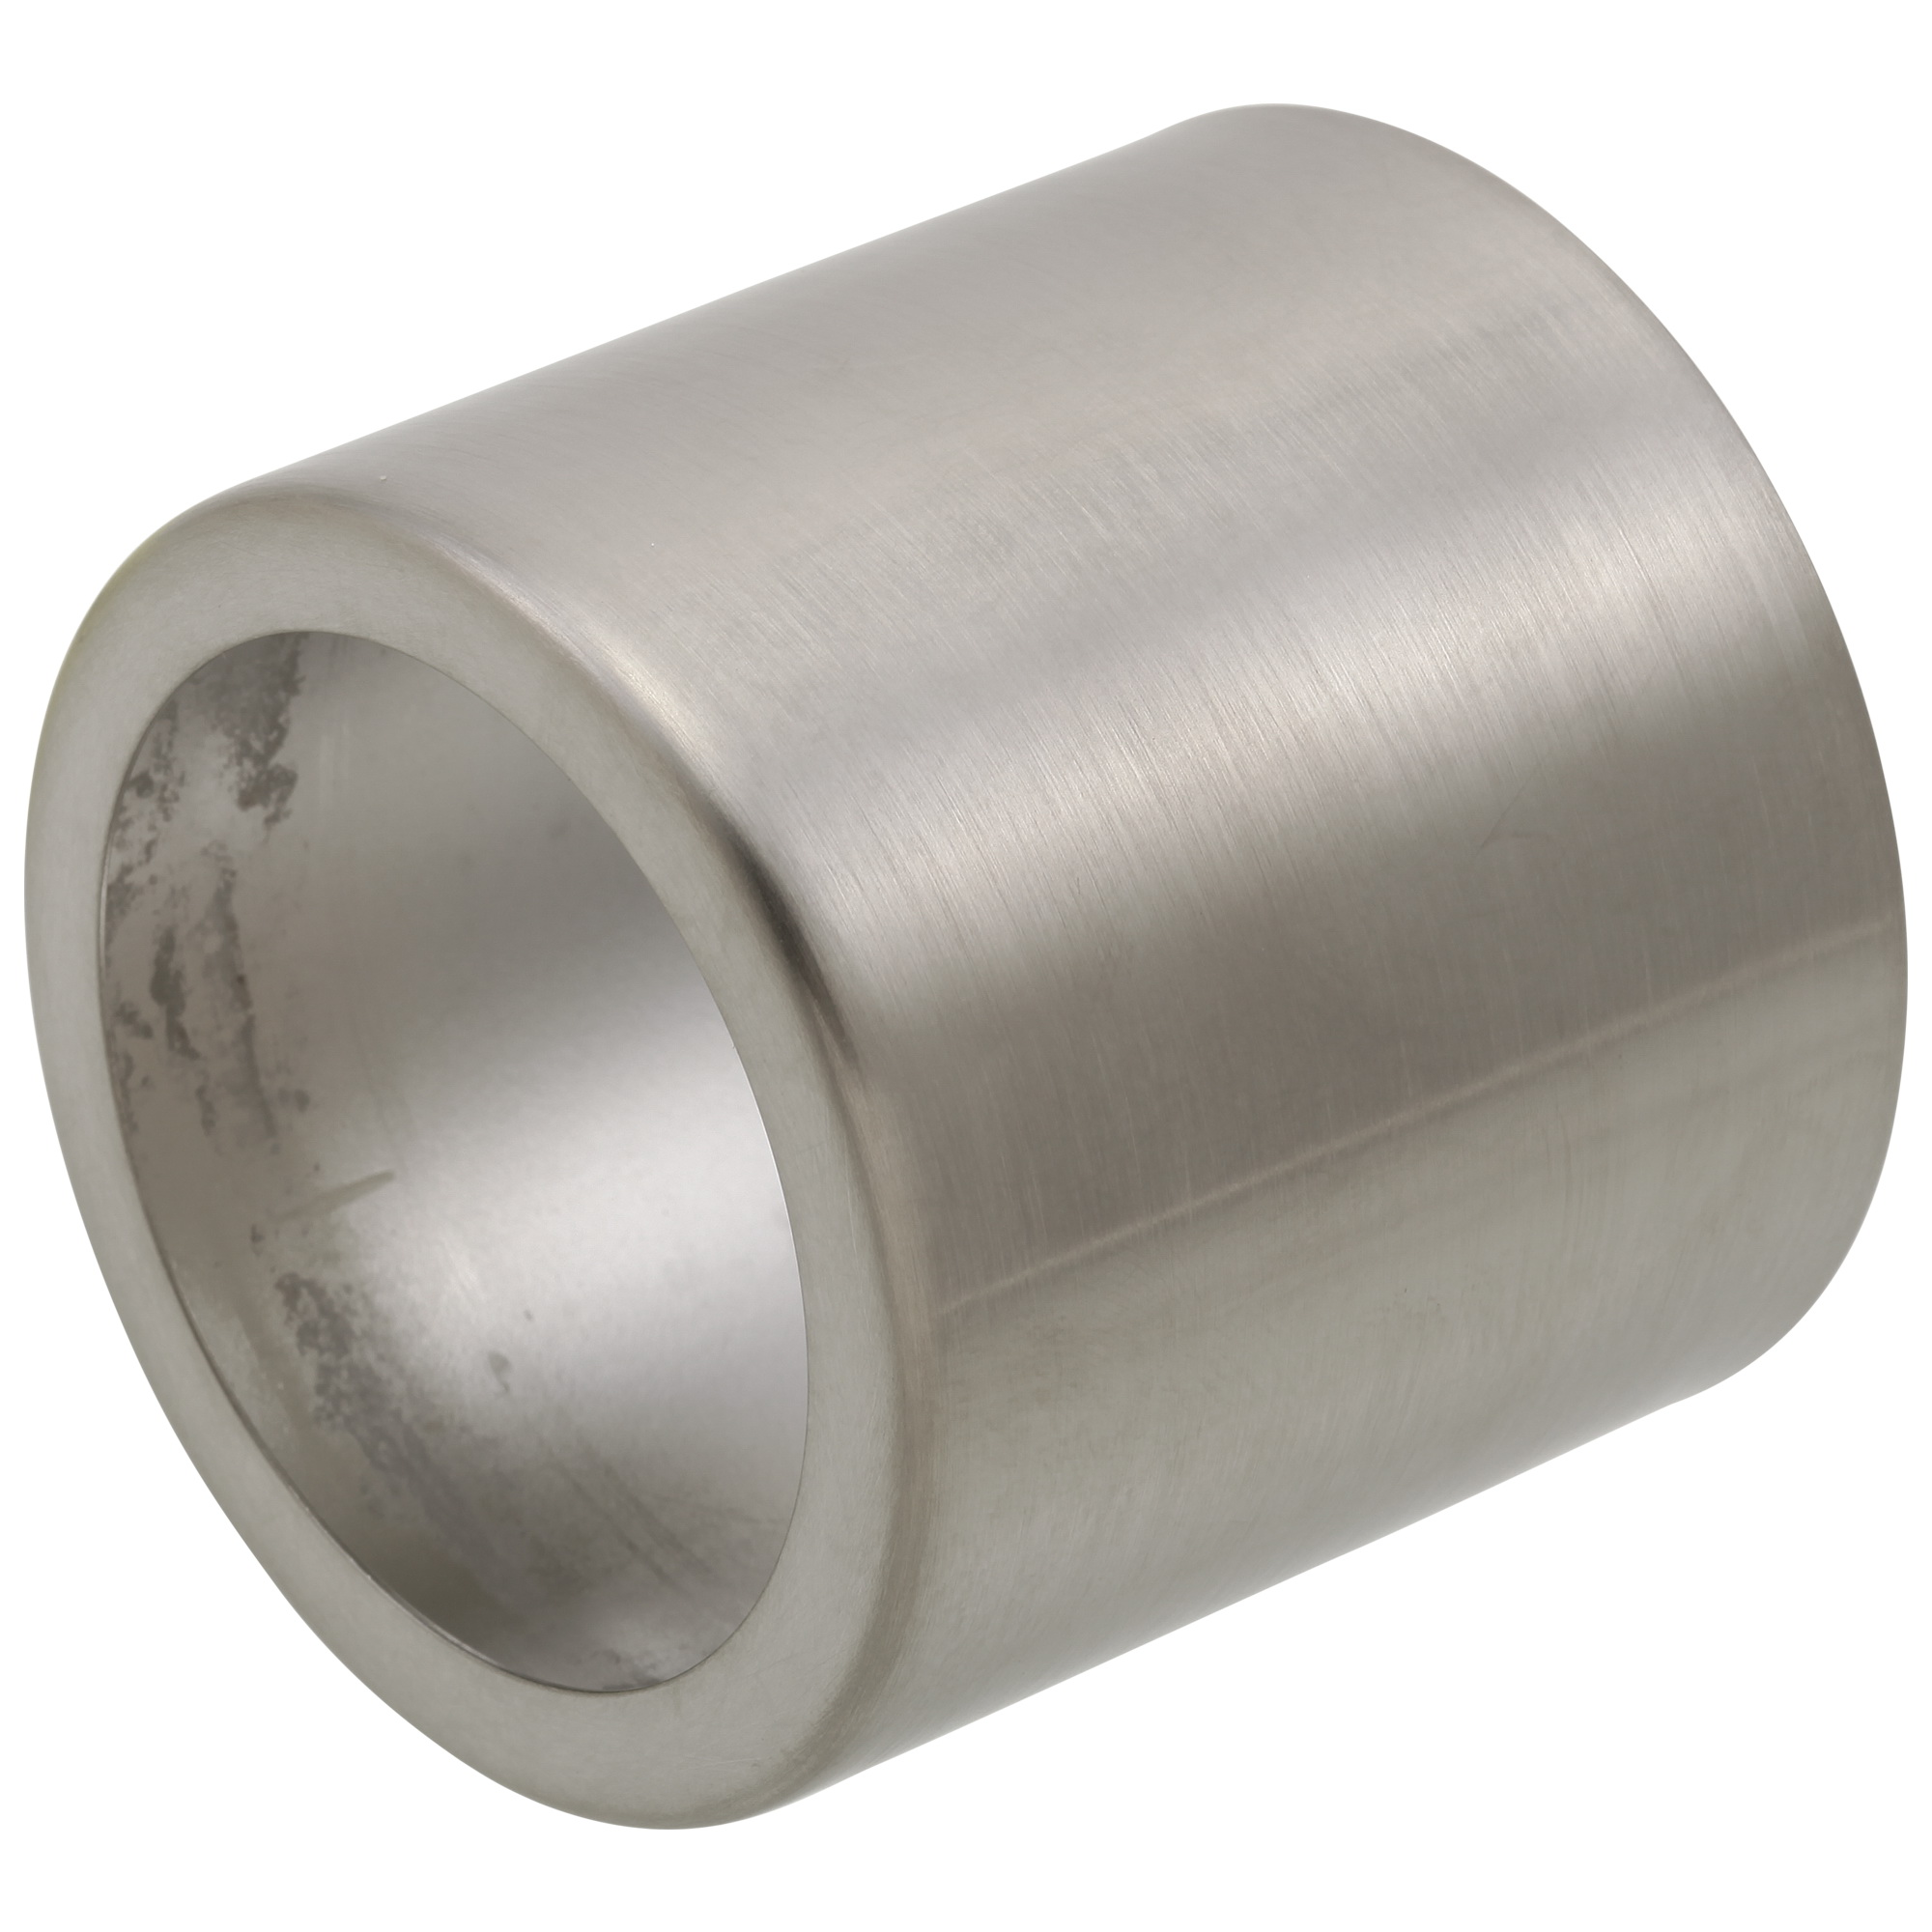 DELTA® RP50880SS 17/18 Trim Sleeve, Stainless Steel